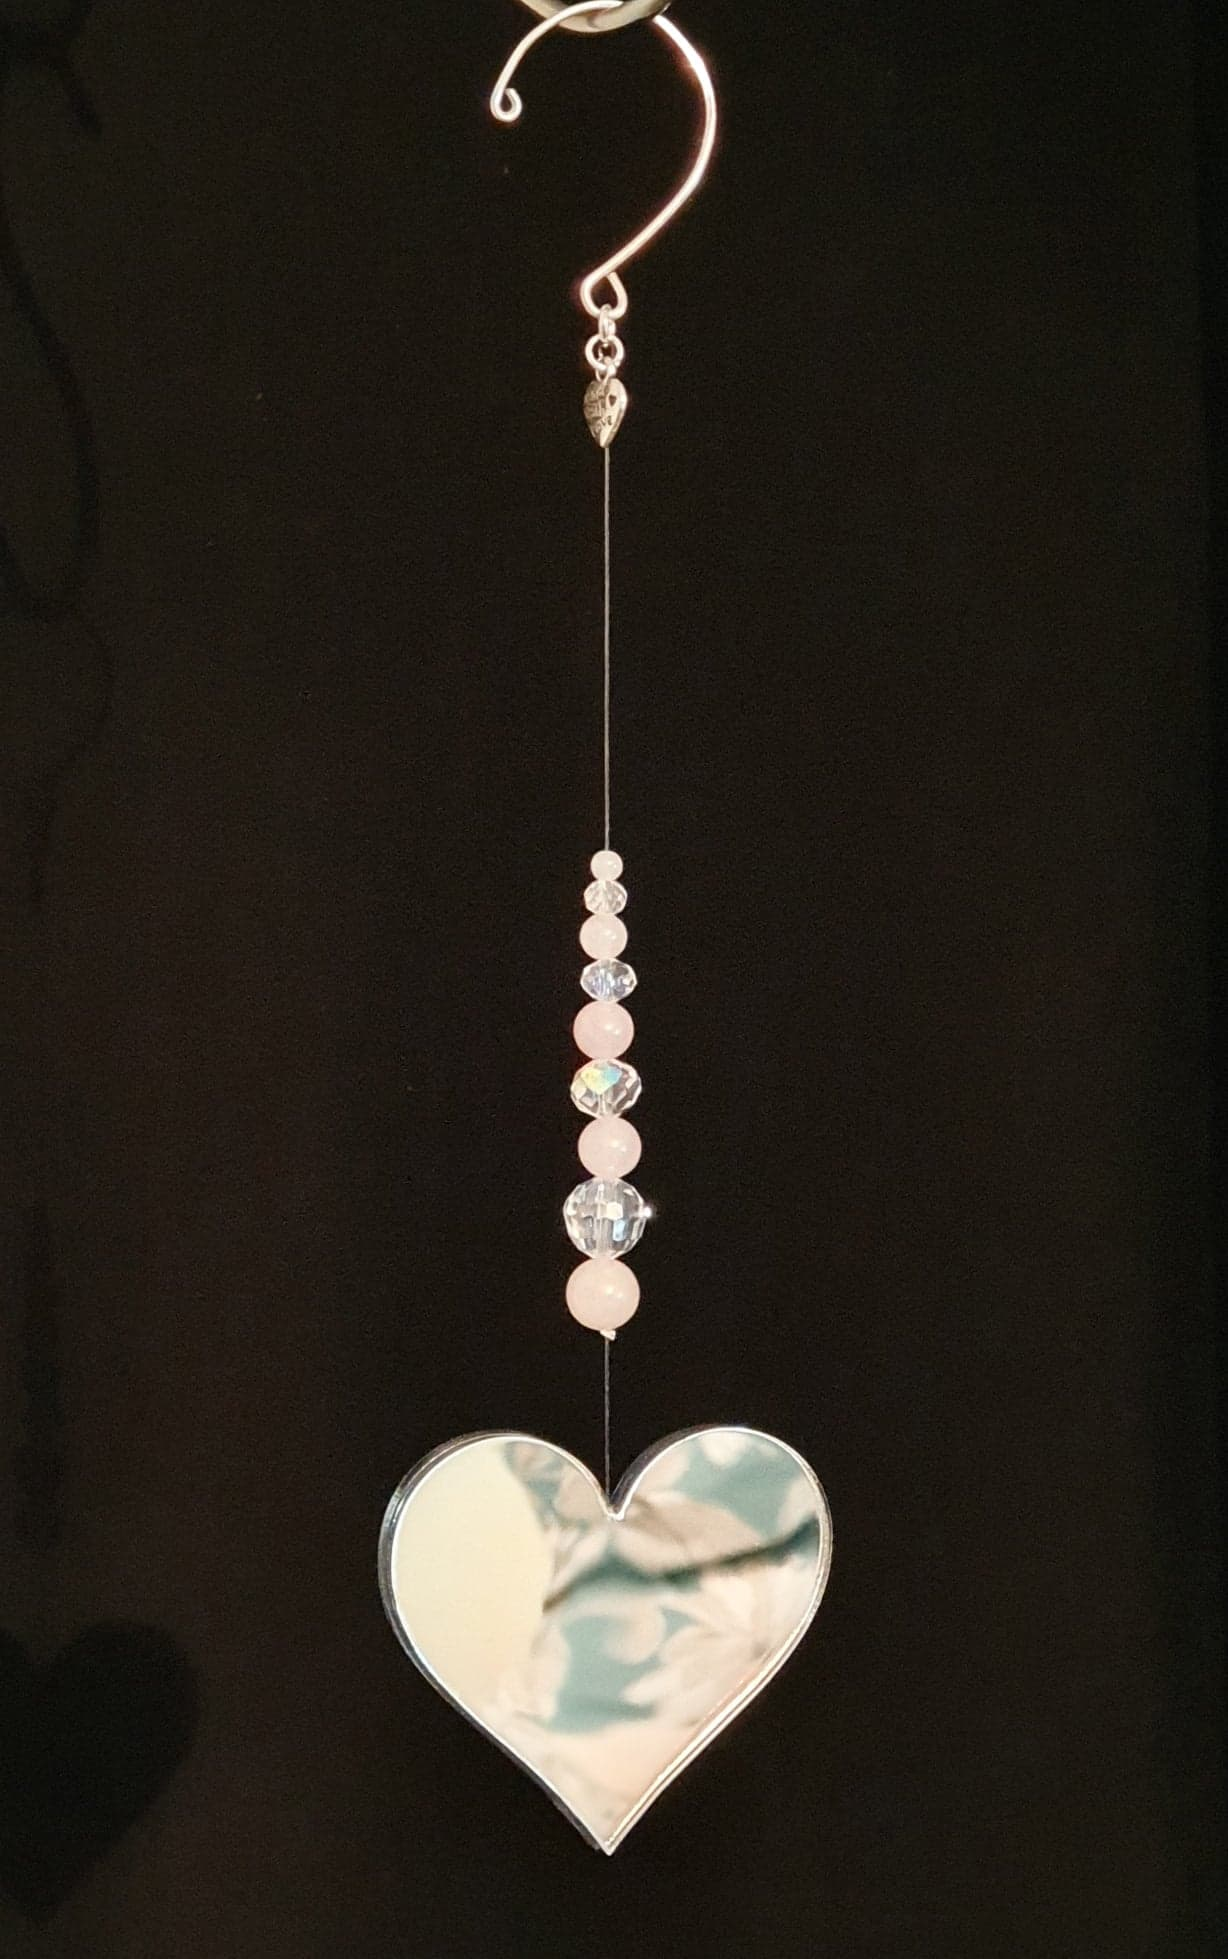 Mirror heart with Rose quartz and AB faceted crystals window decoration